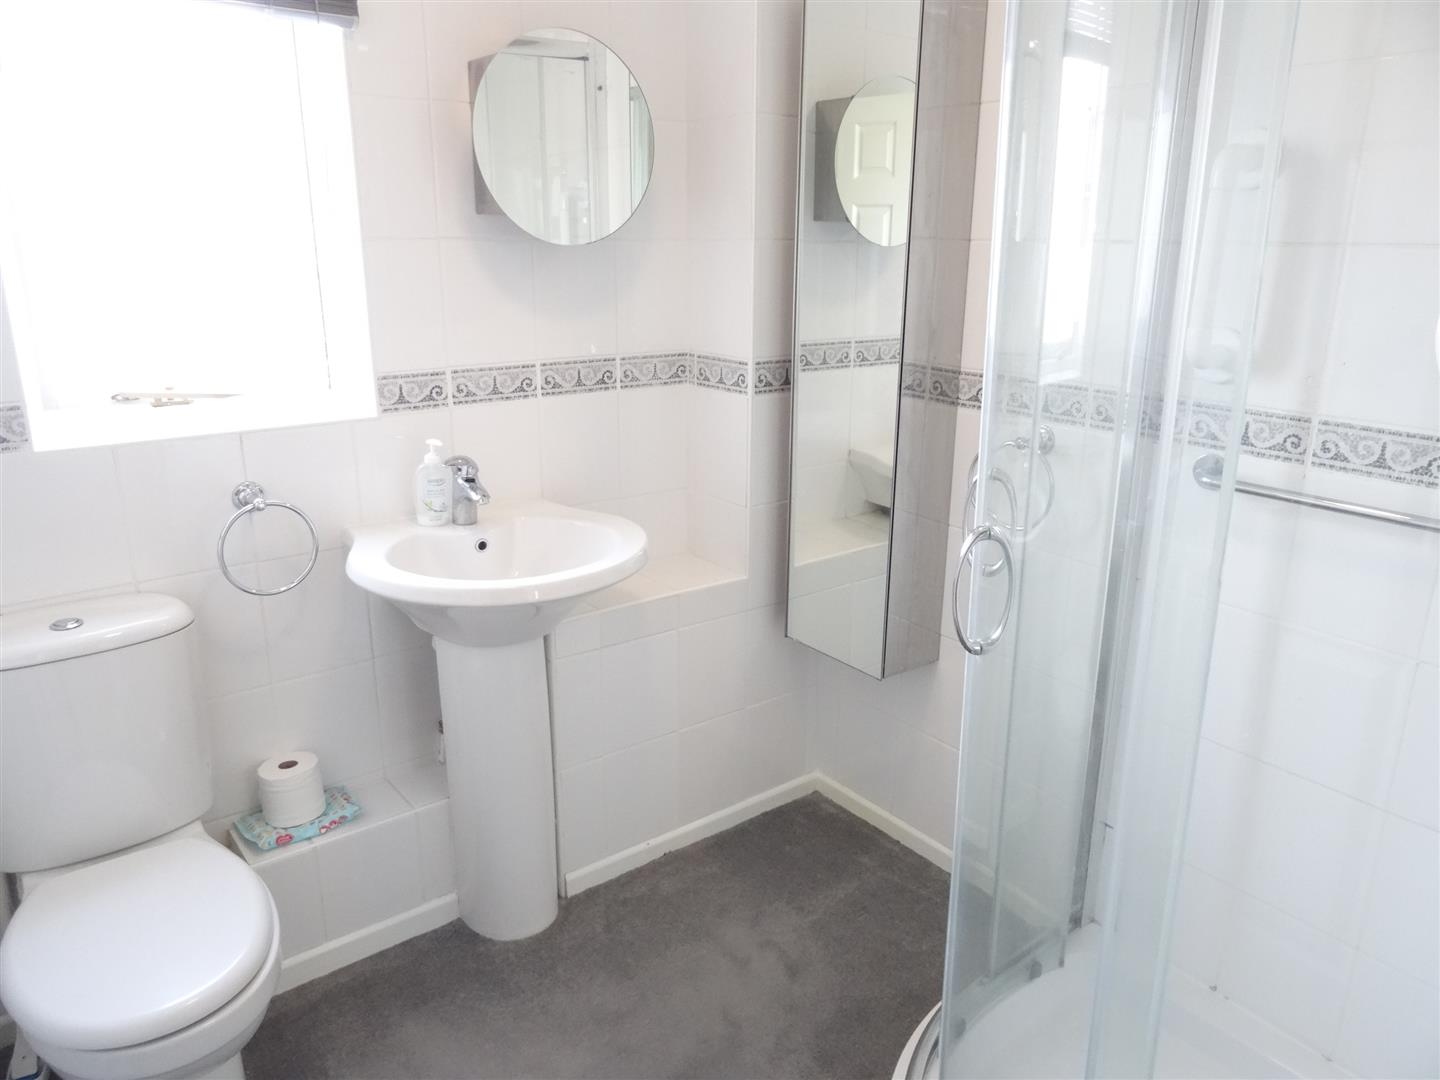 2 Bedrooms House - Semi-Detached For Sale 5 Shankly Road Carlisle